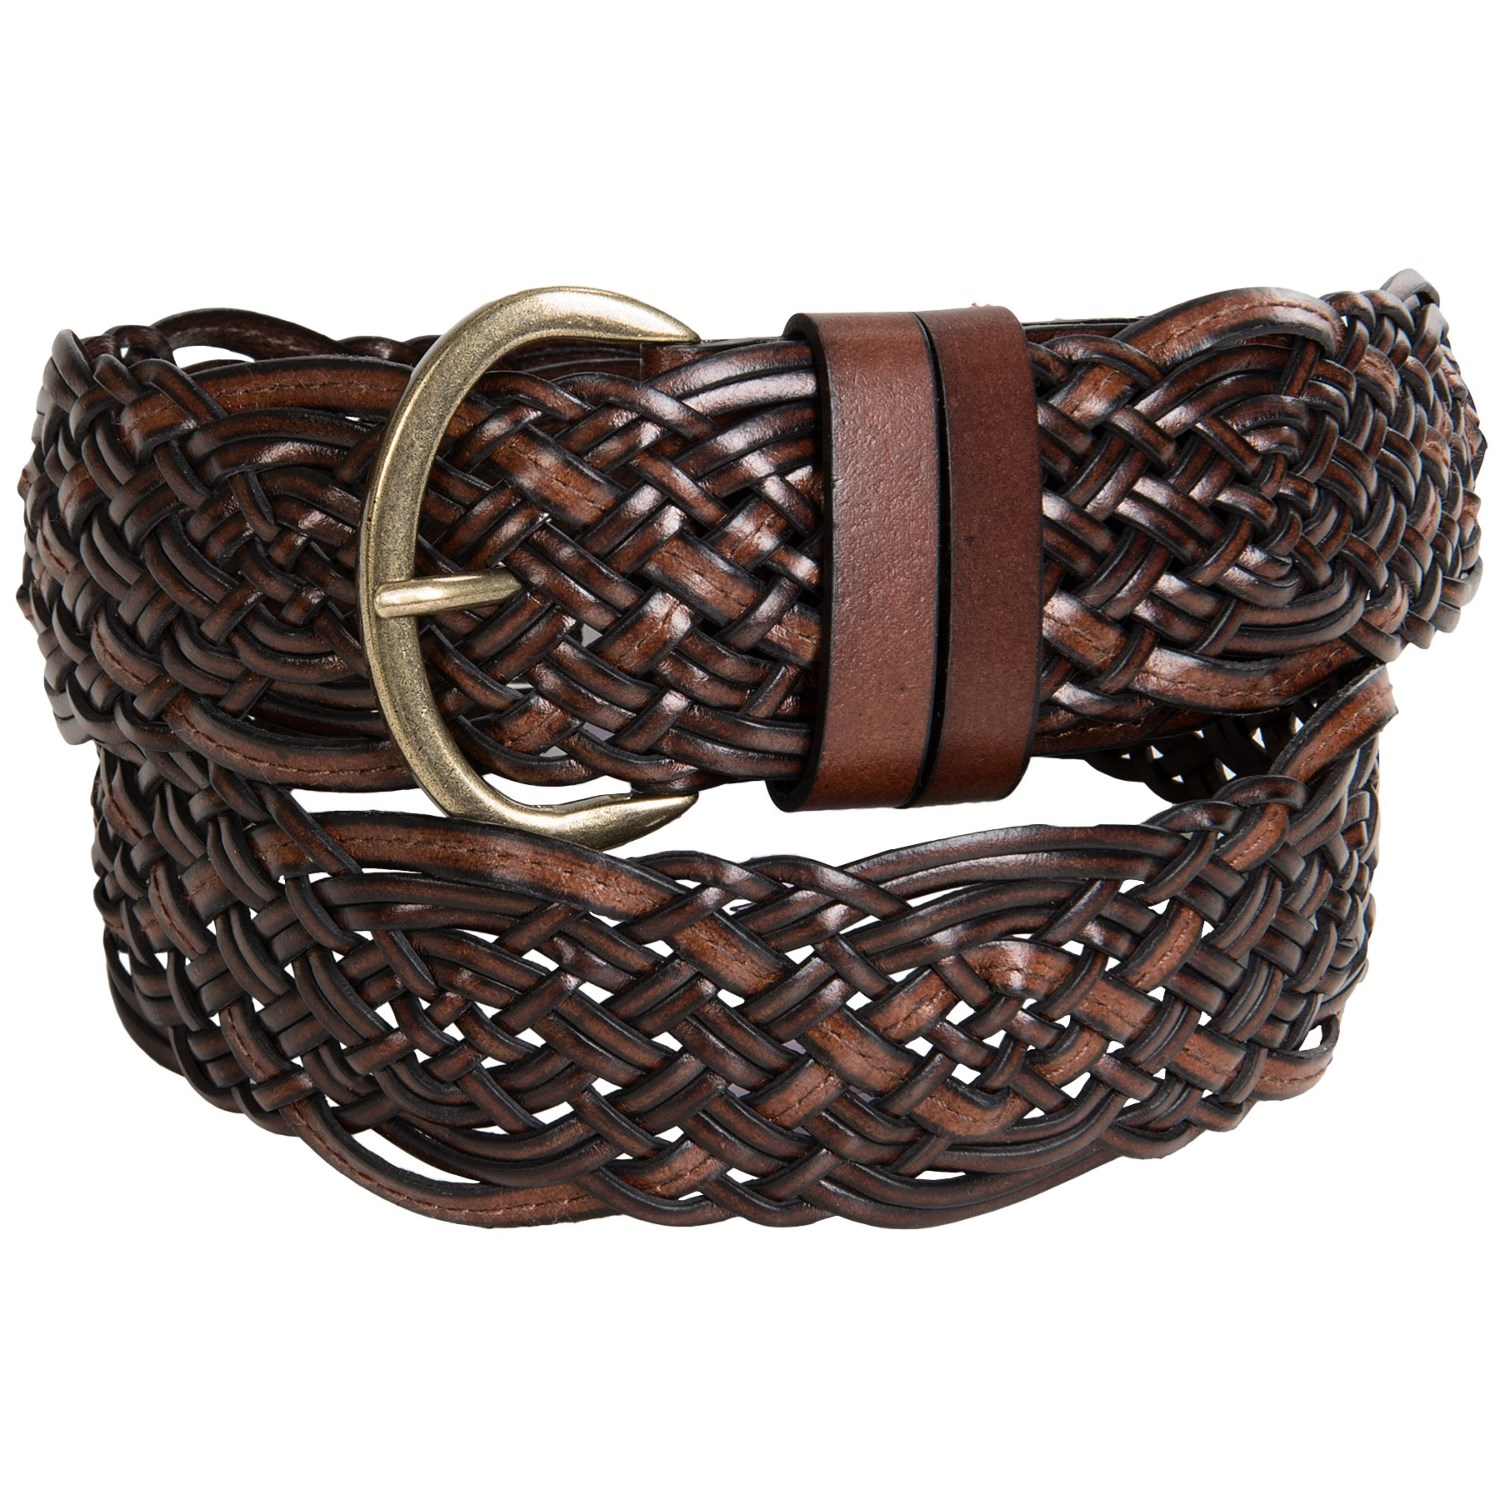 reward braided leather belt for 7465r save 58